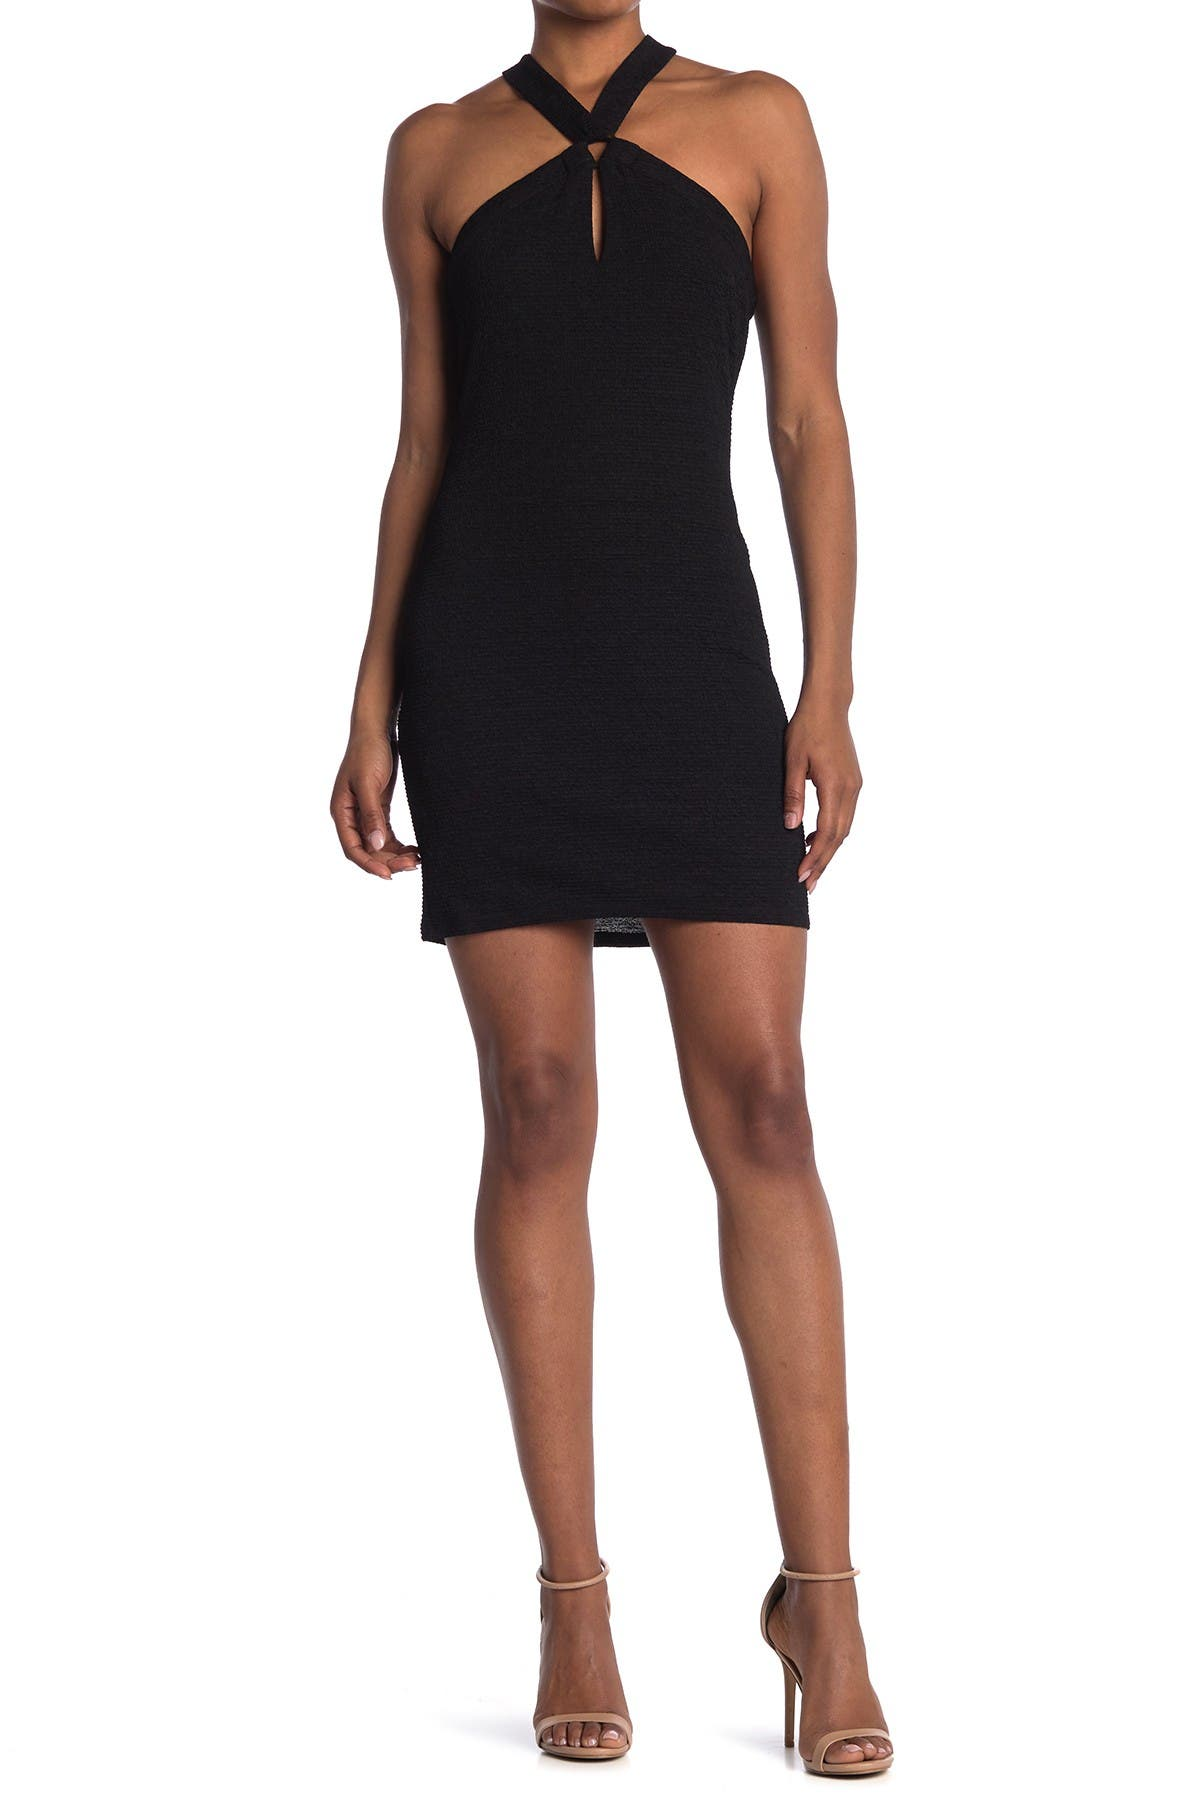 Image of BCBGeneration Halter O-Ring Bodycon Dress